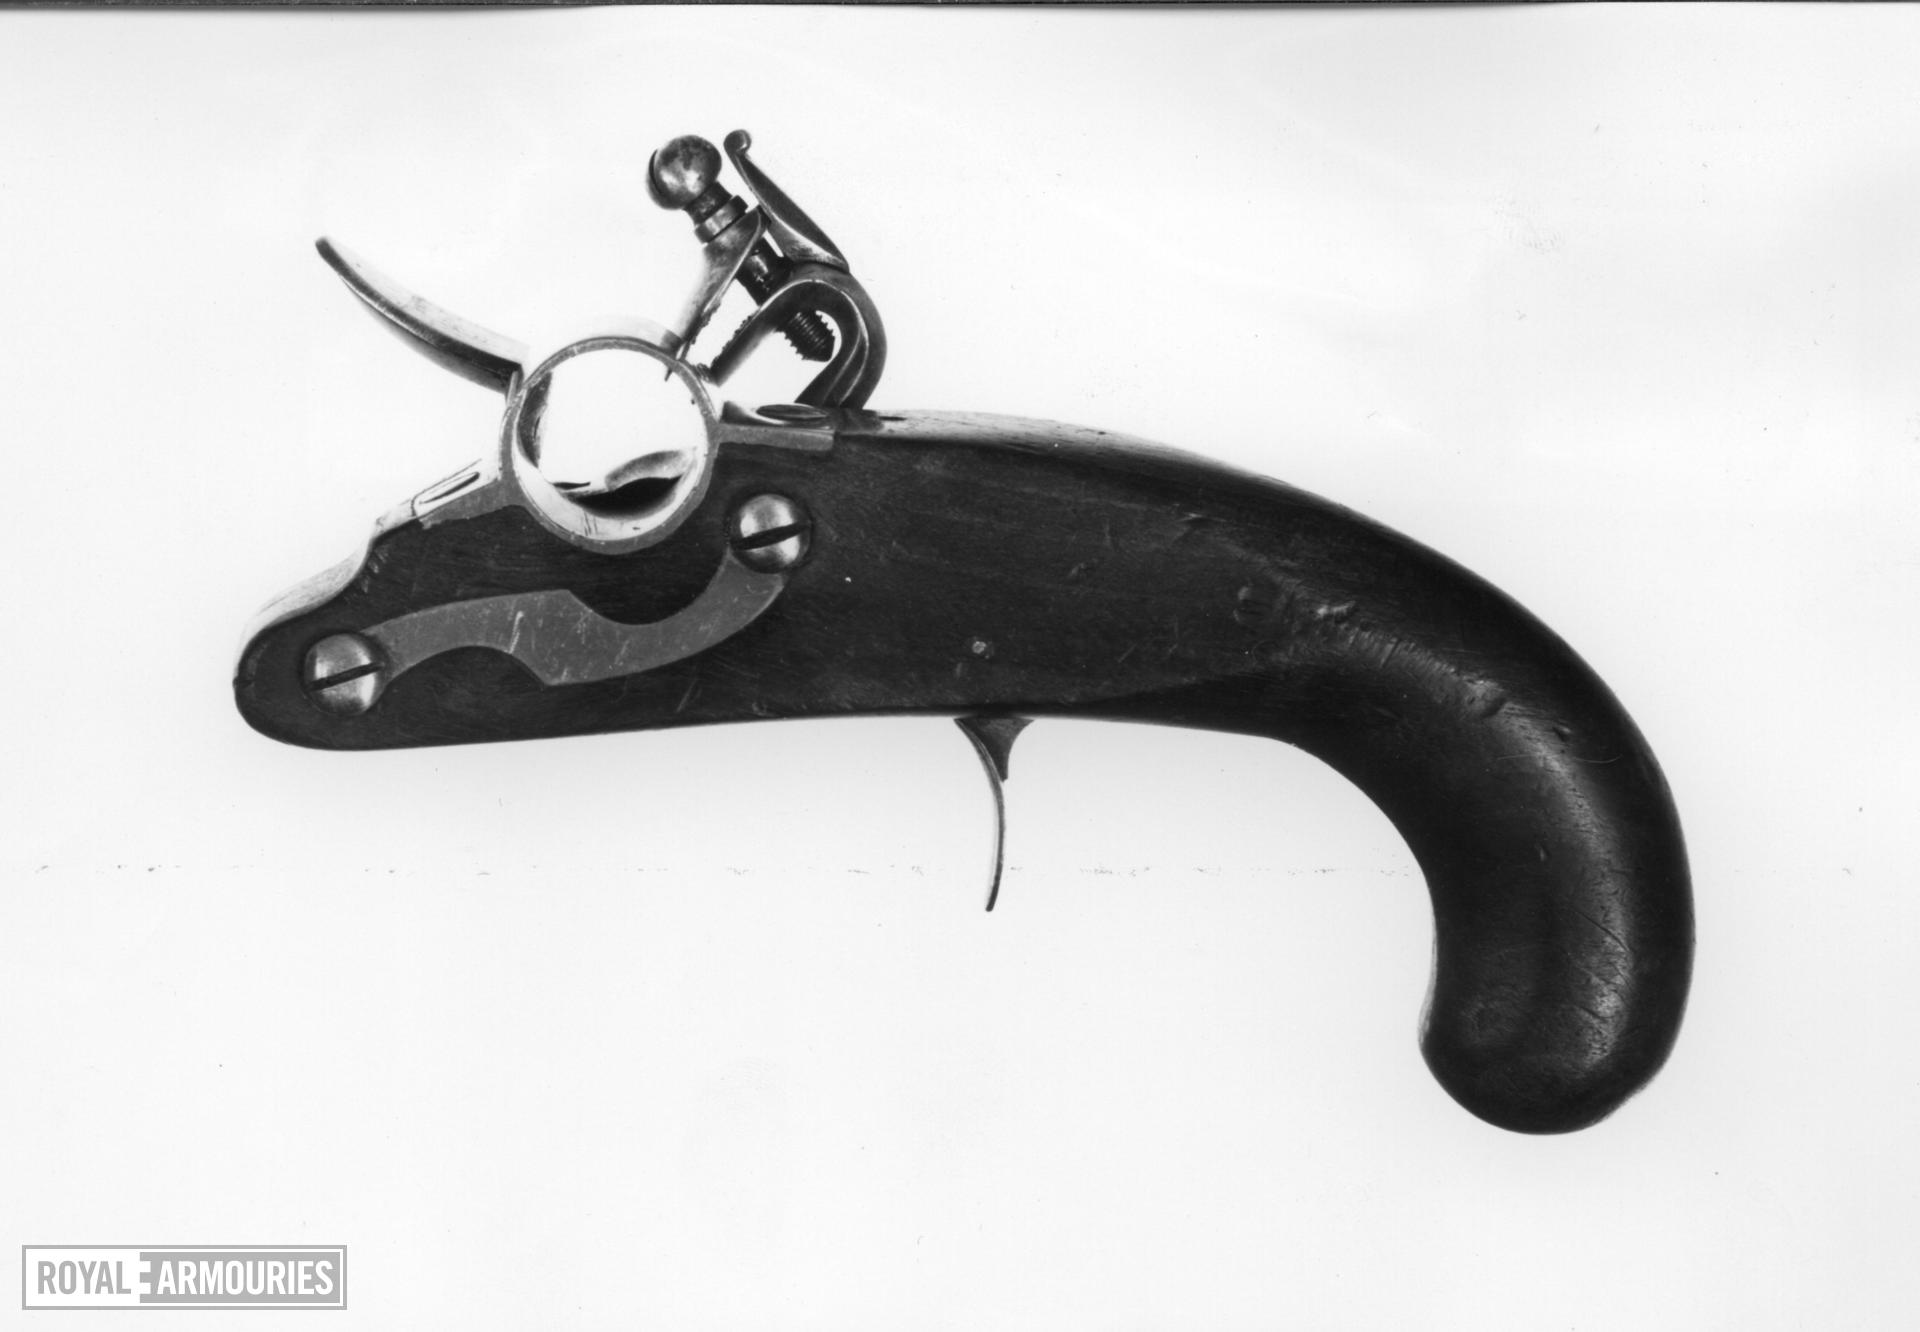 Flintlock igniter - By Theophilus Richards Probably for igniting port fires